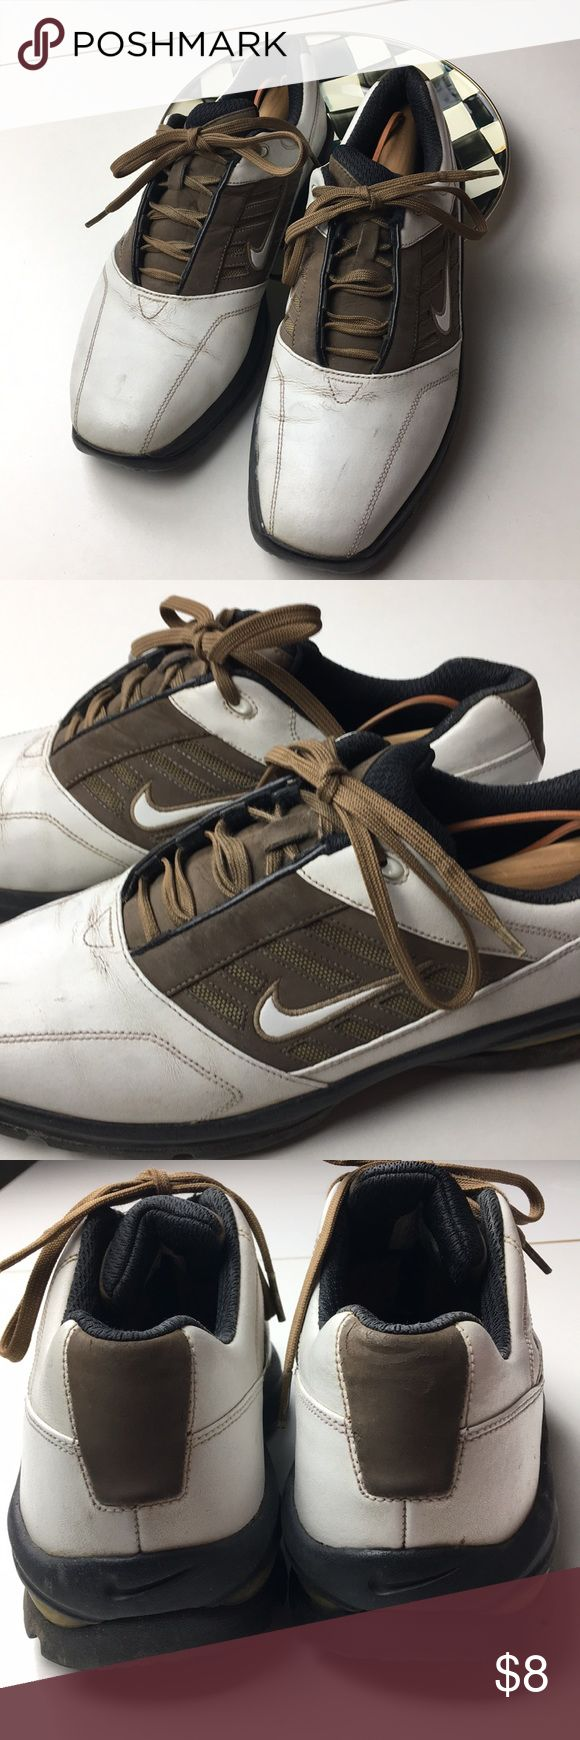 Men's Golf Shoes, Nike Golf, Spikes, Sports Size 10 Nike Golf Shoes.  There is a little wear near the lace at top. Still great Shoes especially for new teen golfer or on a day when weather is bad. These were my sons extra pair just for that reason. Nike Shoes Athletic Shoes